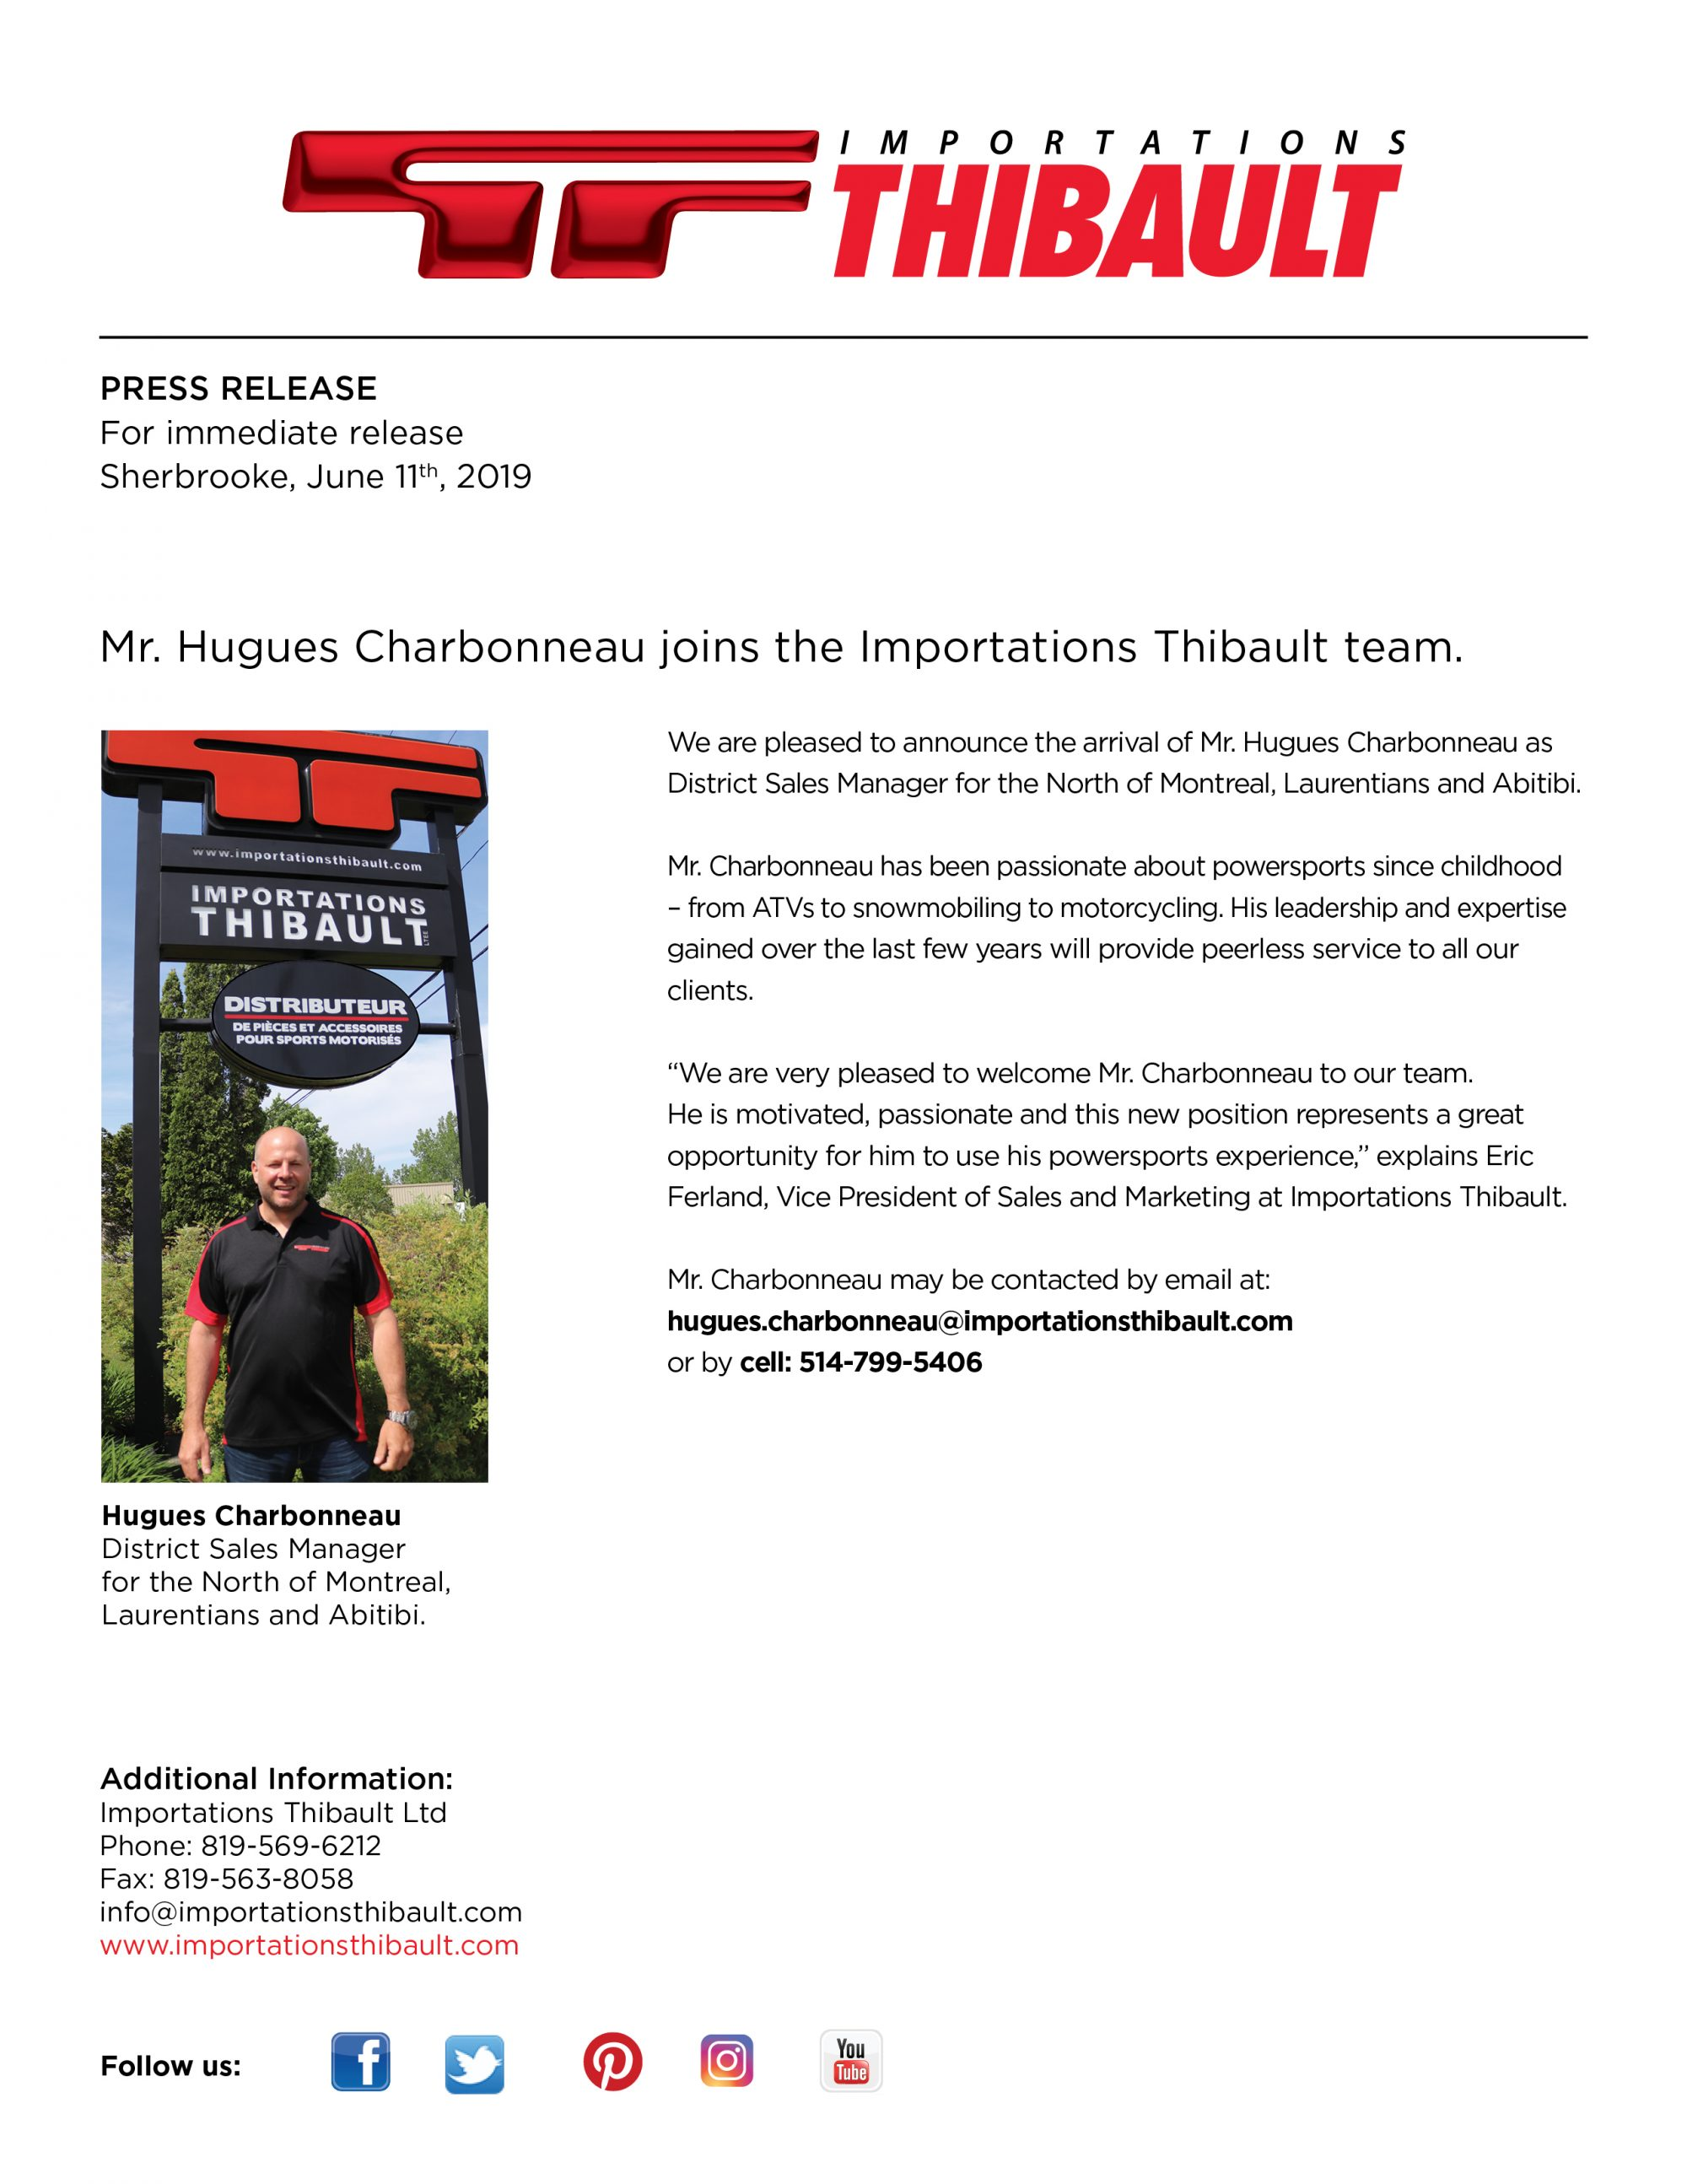 Mr. Hugues Charbonneau joins the Importations Thibault team.